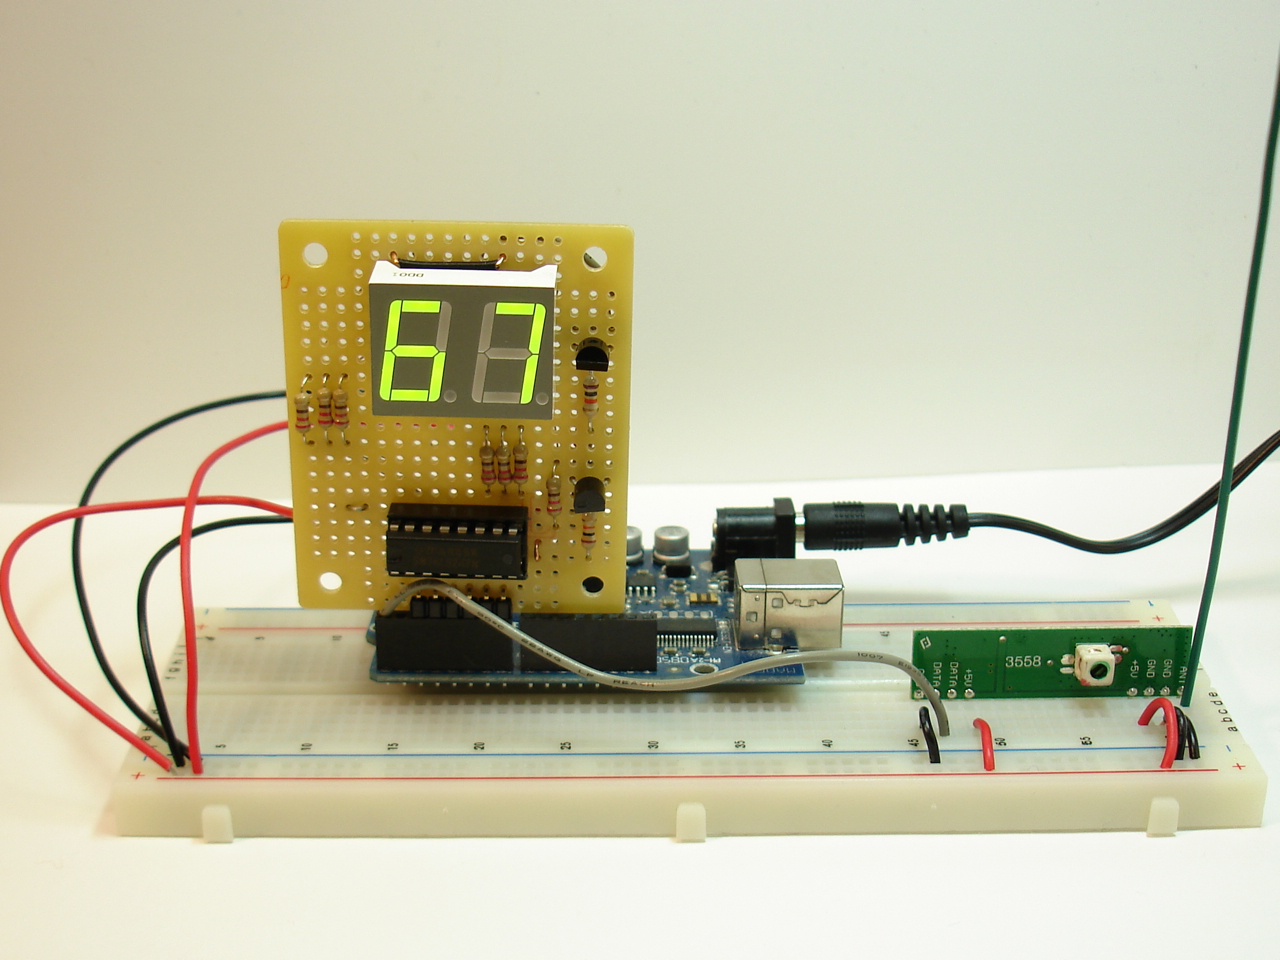 Project Lab Fm Transmitter Circuit 6 Electronic Breadboard Layout Rf Receiver With Temperature Display